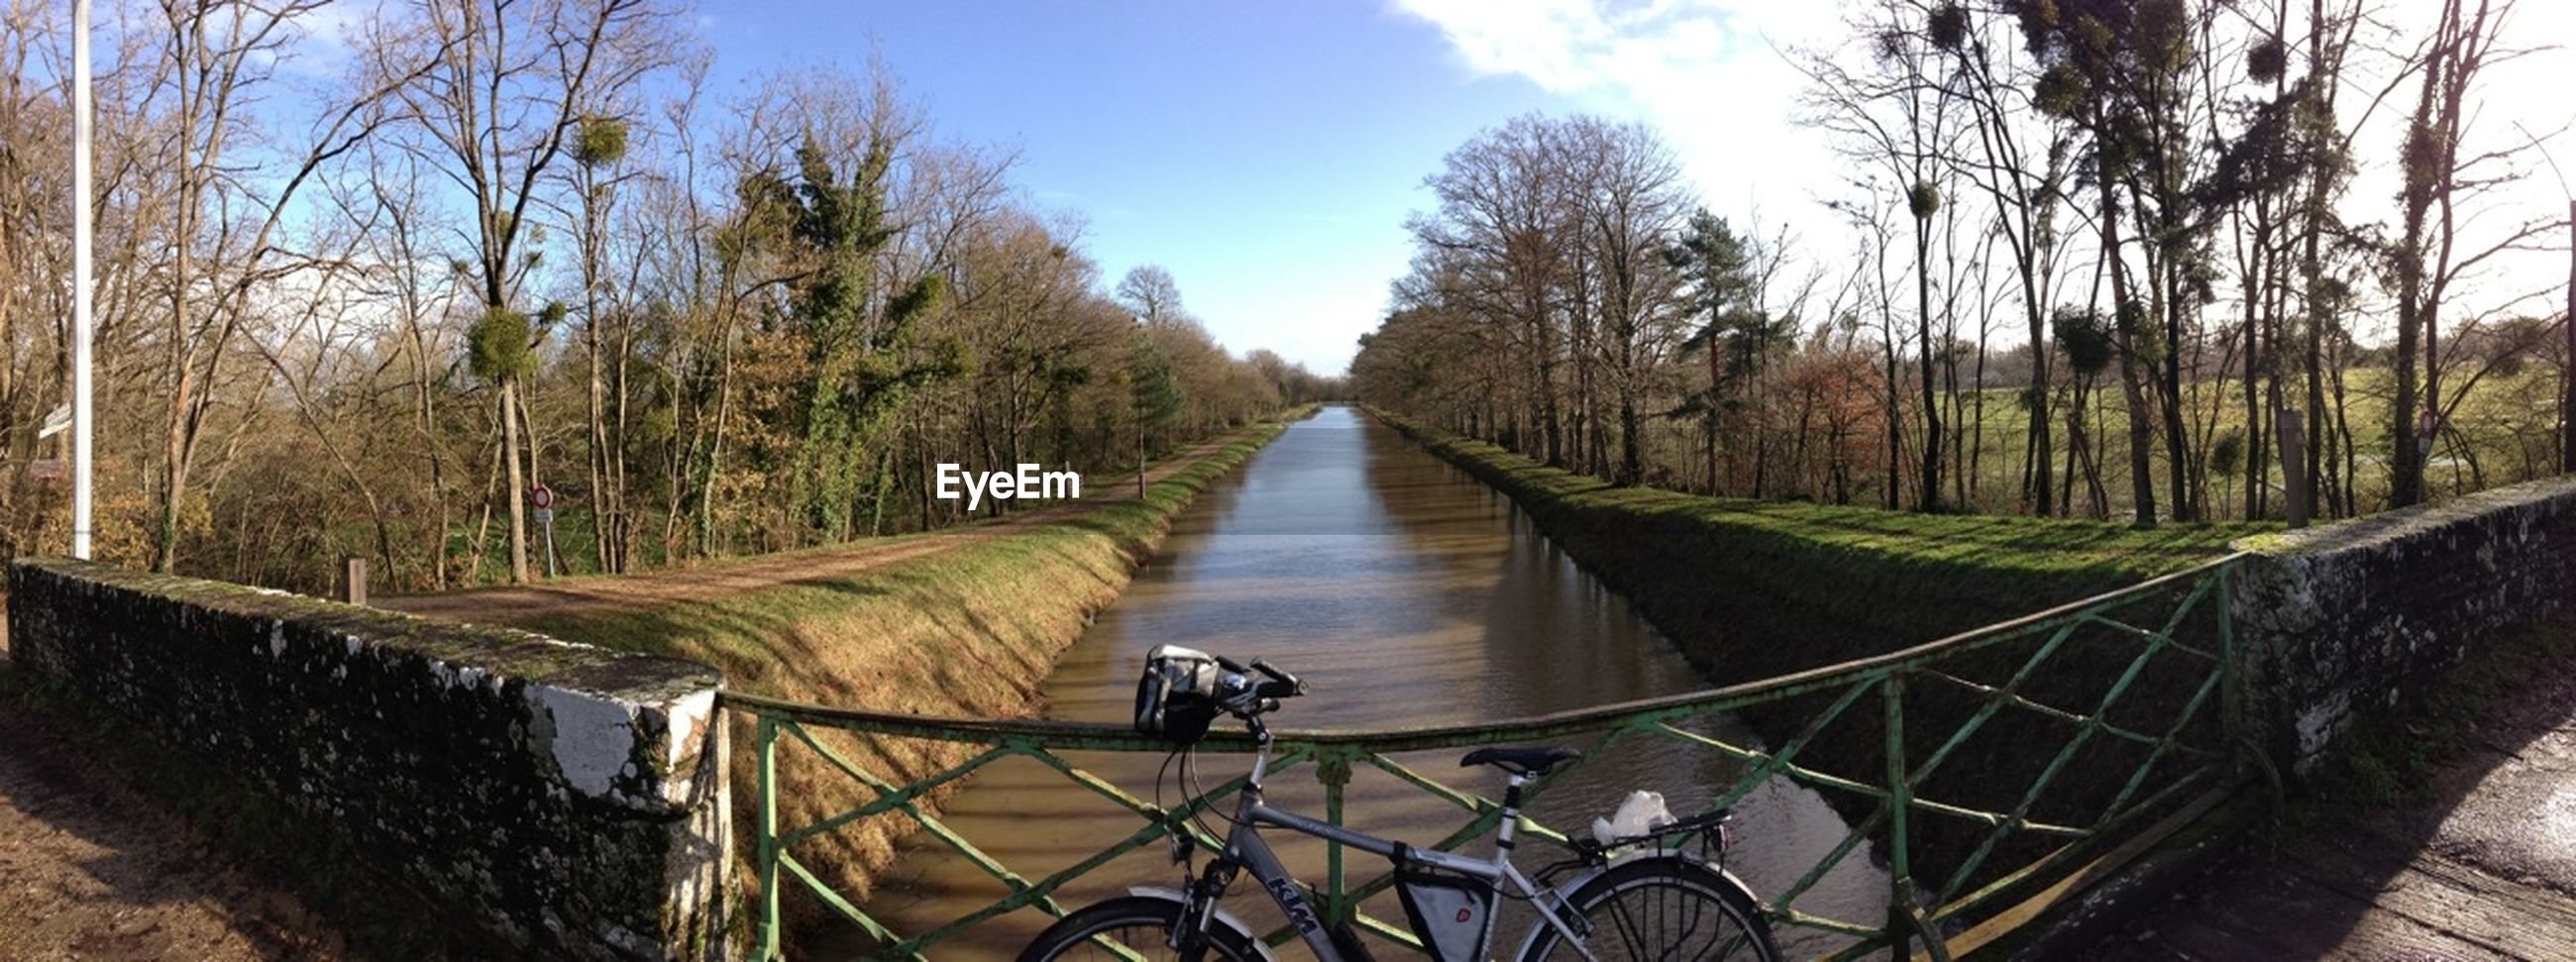 tree, water, railing, sky, the way forward, diminishing perspective, canal, transportation, footbridge, bare tree, river, tranquility, nature, tranquil scene, bicycle, day, lake, vanishing point, bridge - man made structure, built structure